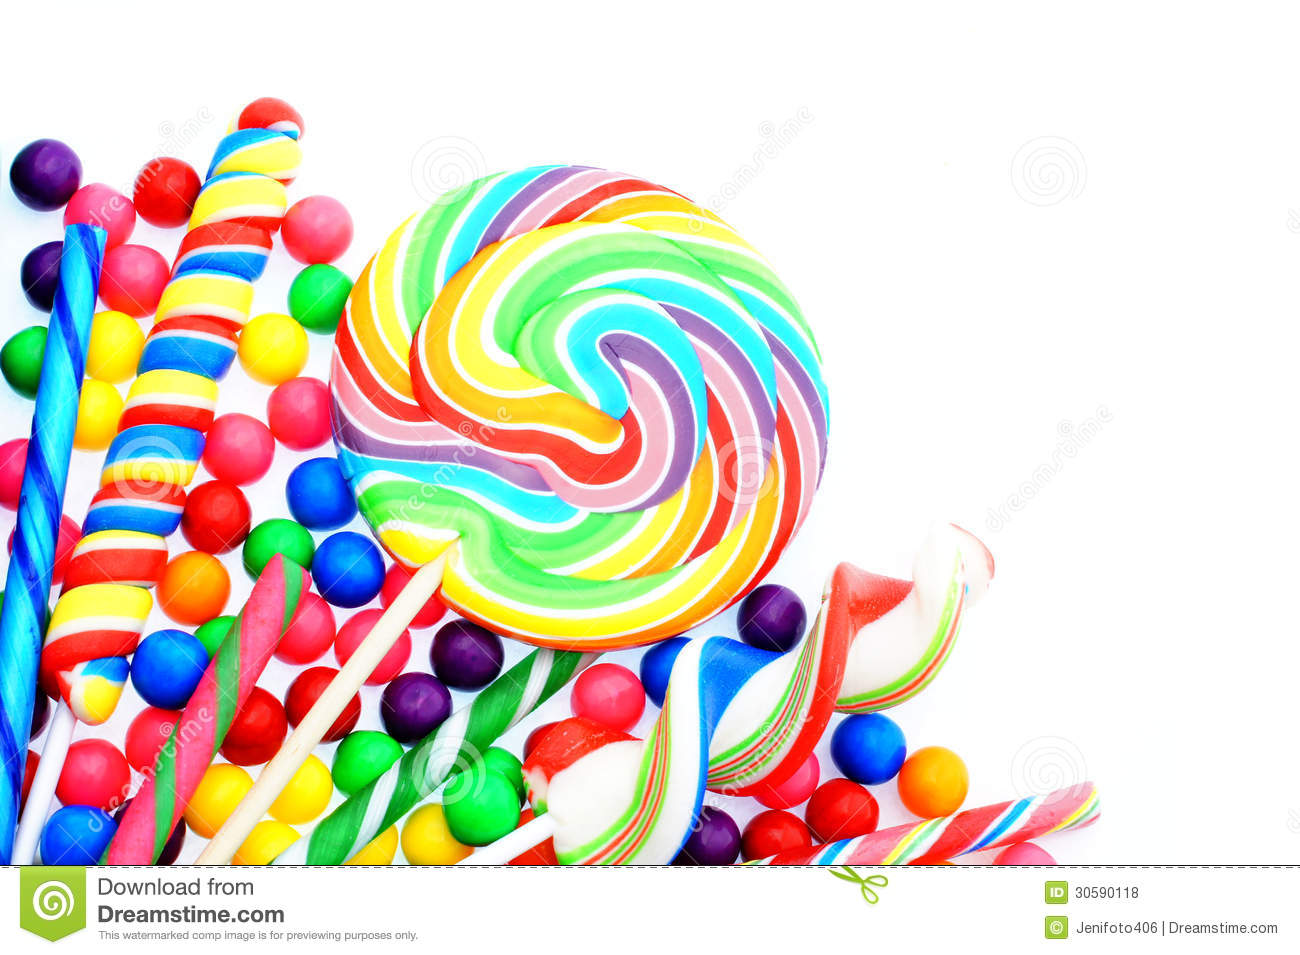 Candyland clipart border. Collection of free download